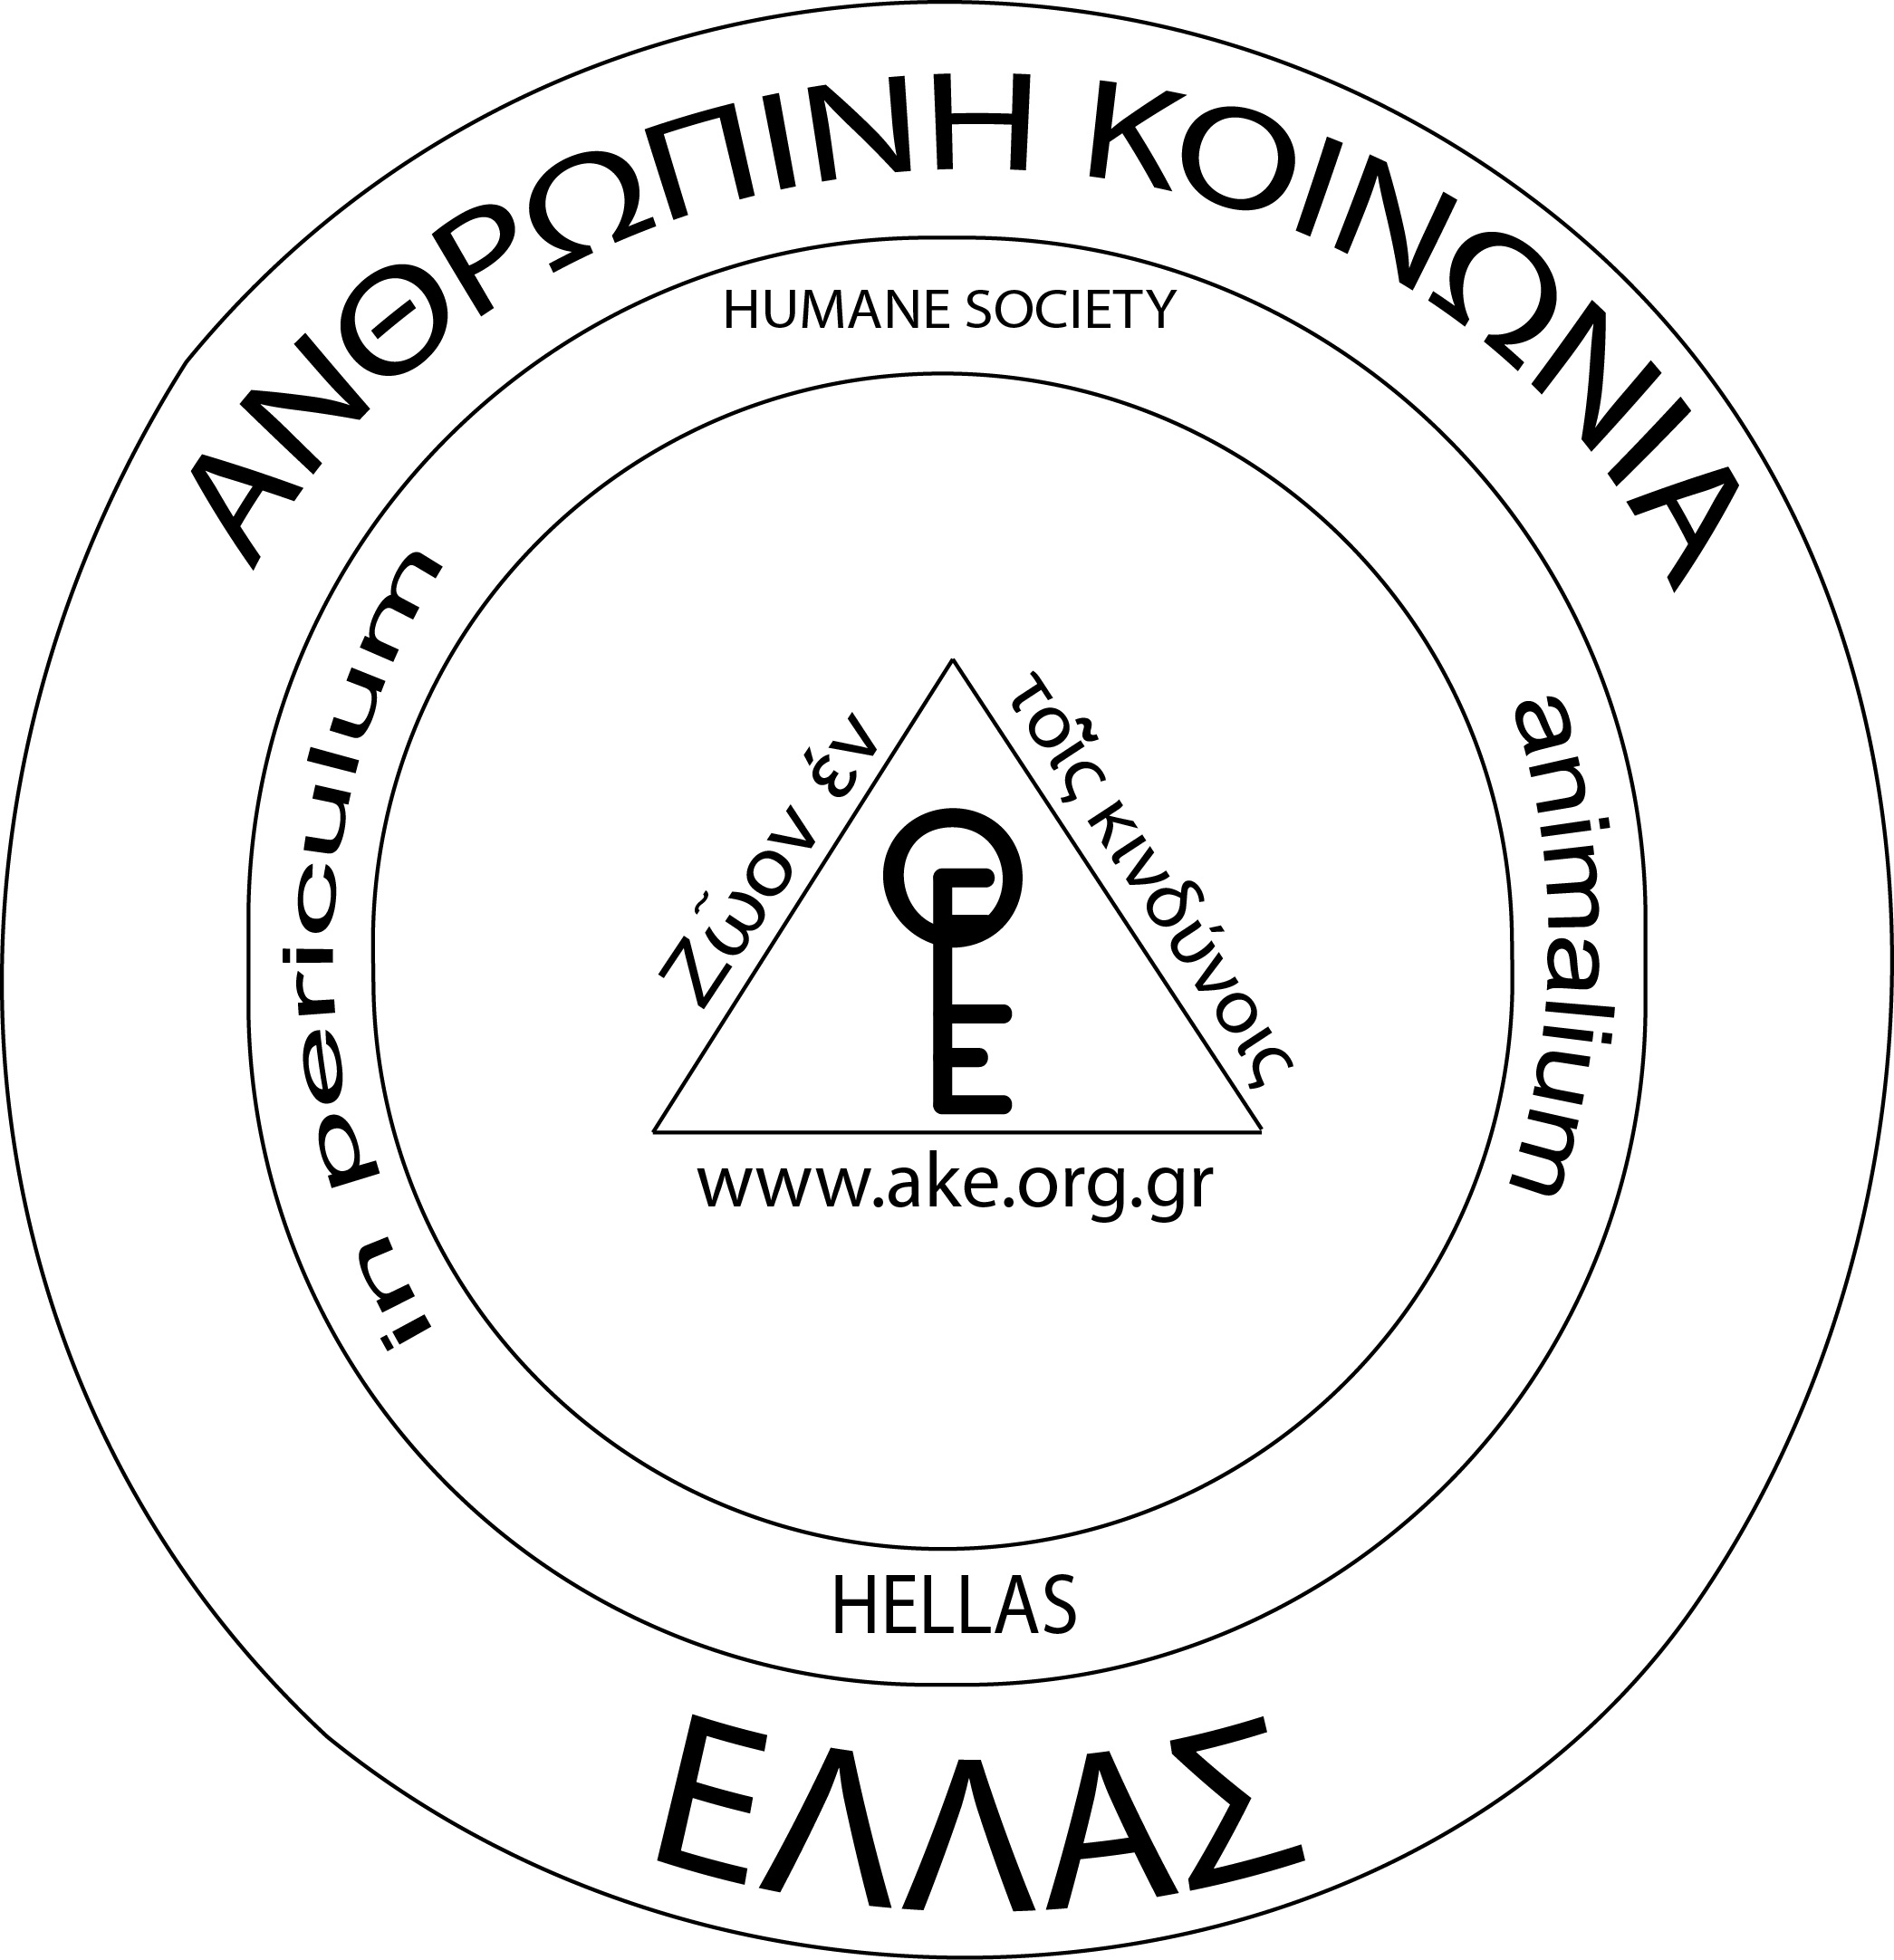 Anthropini koinonia hellas